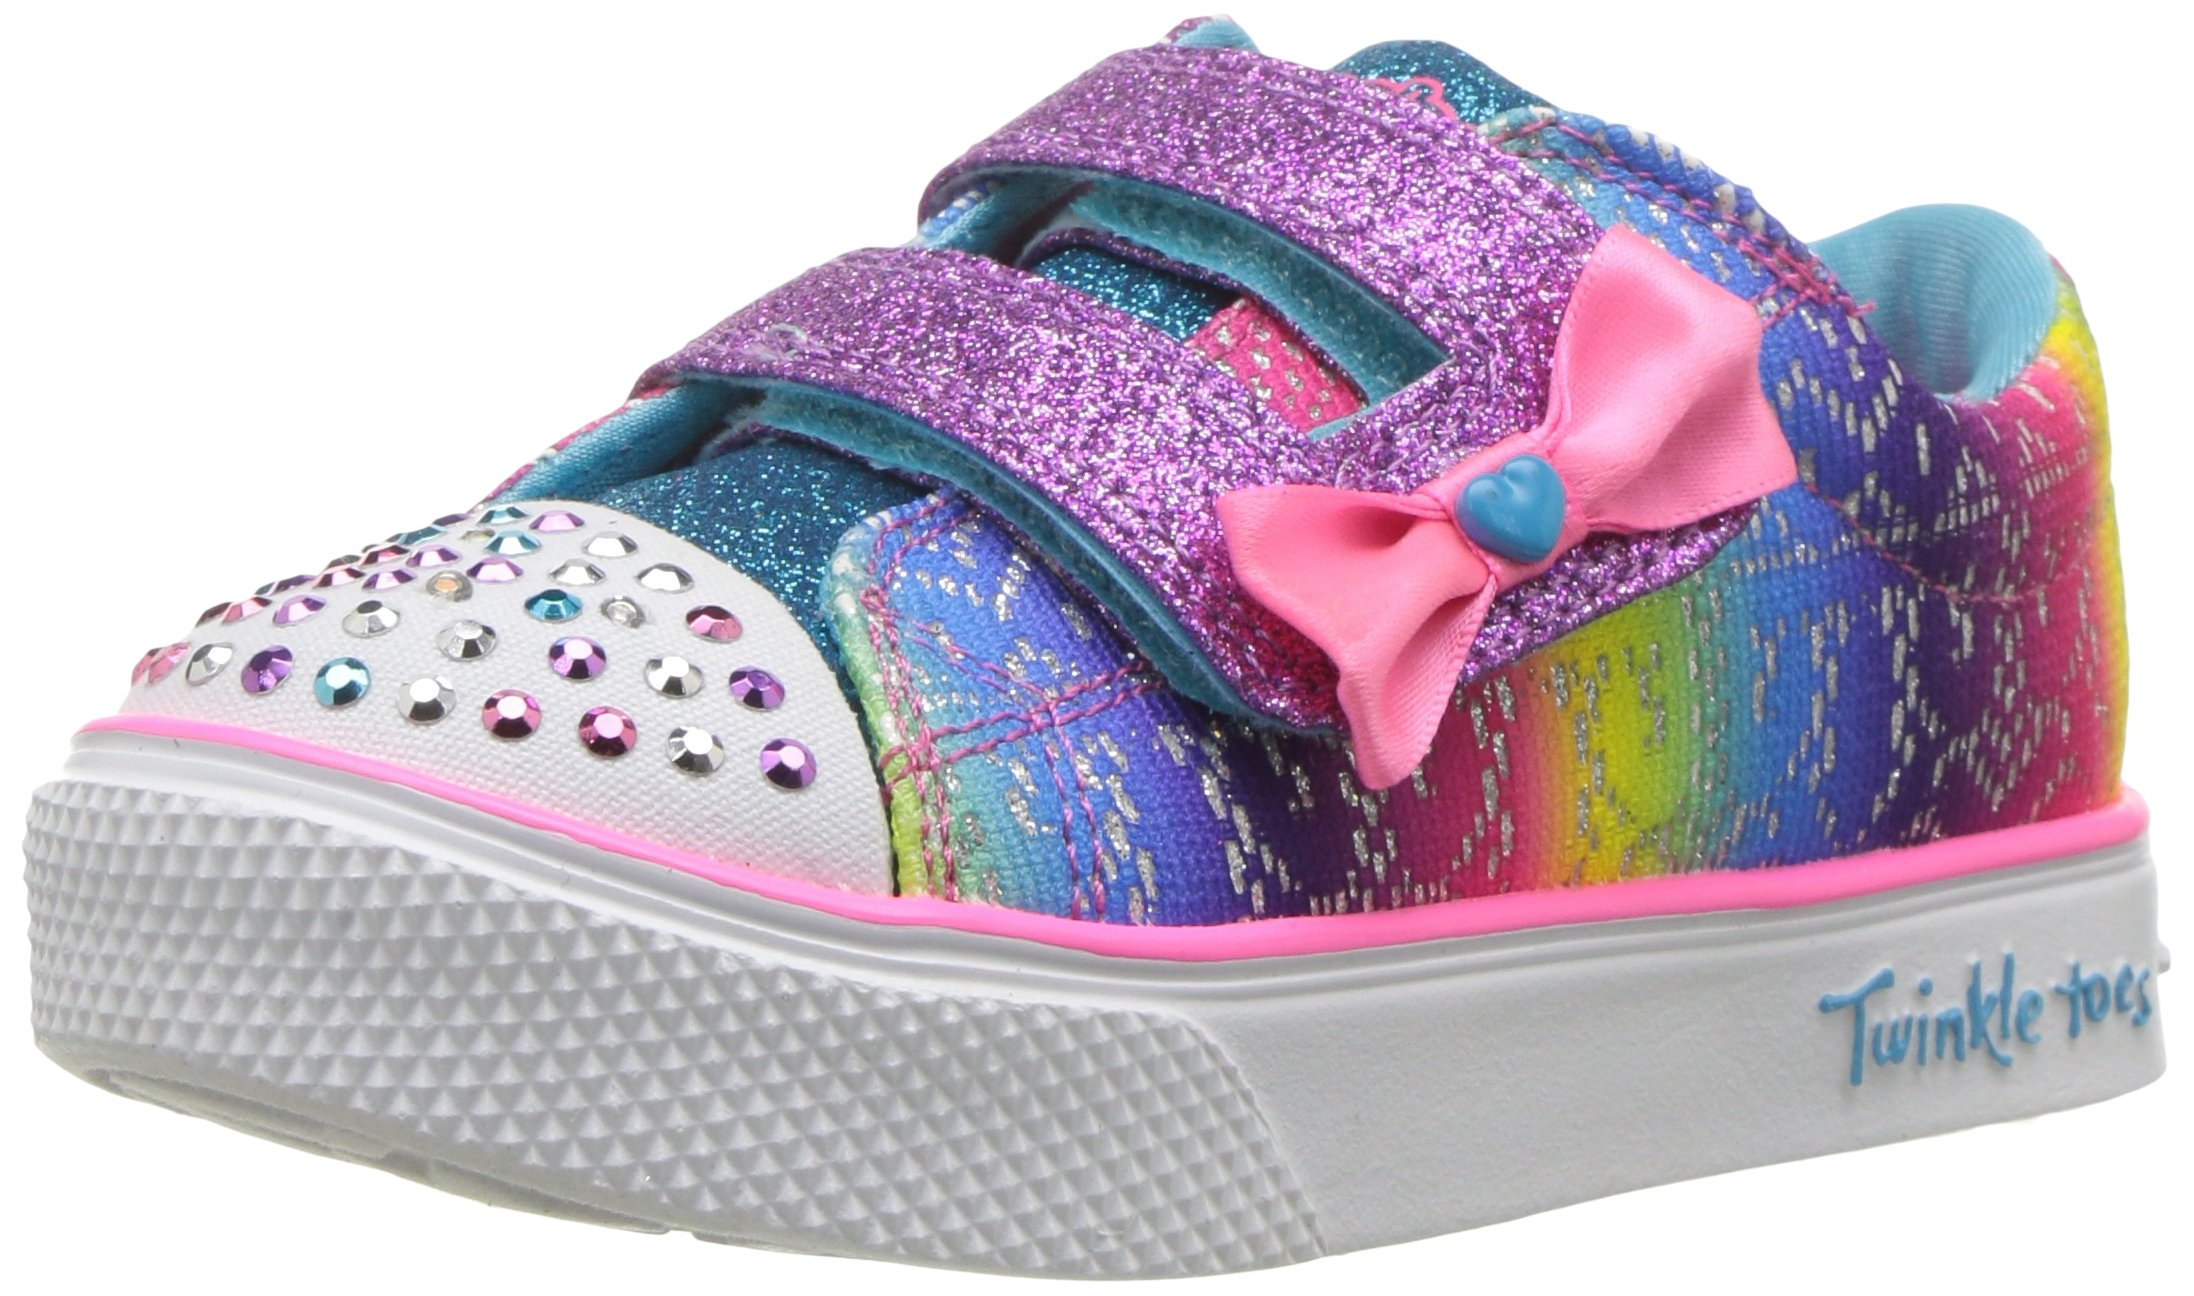 Skechers Kids Girls' Twinkle Breeze 2.0-Colorful Sneaker,Multi,10 Medium US Toddler by Skechers